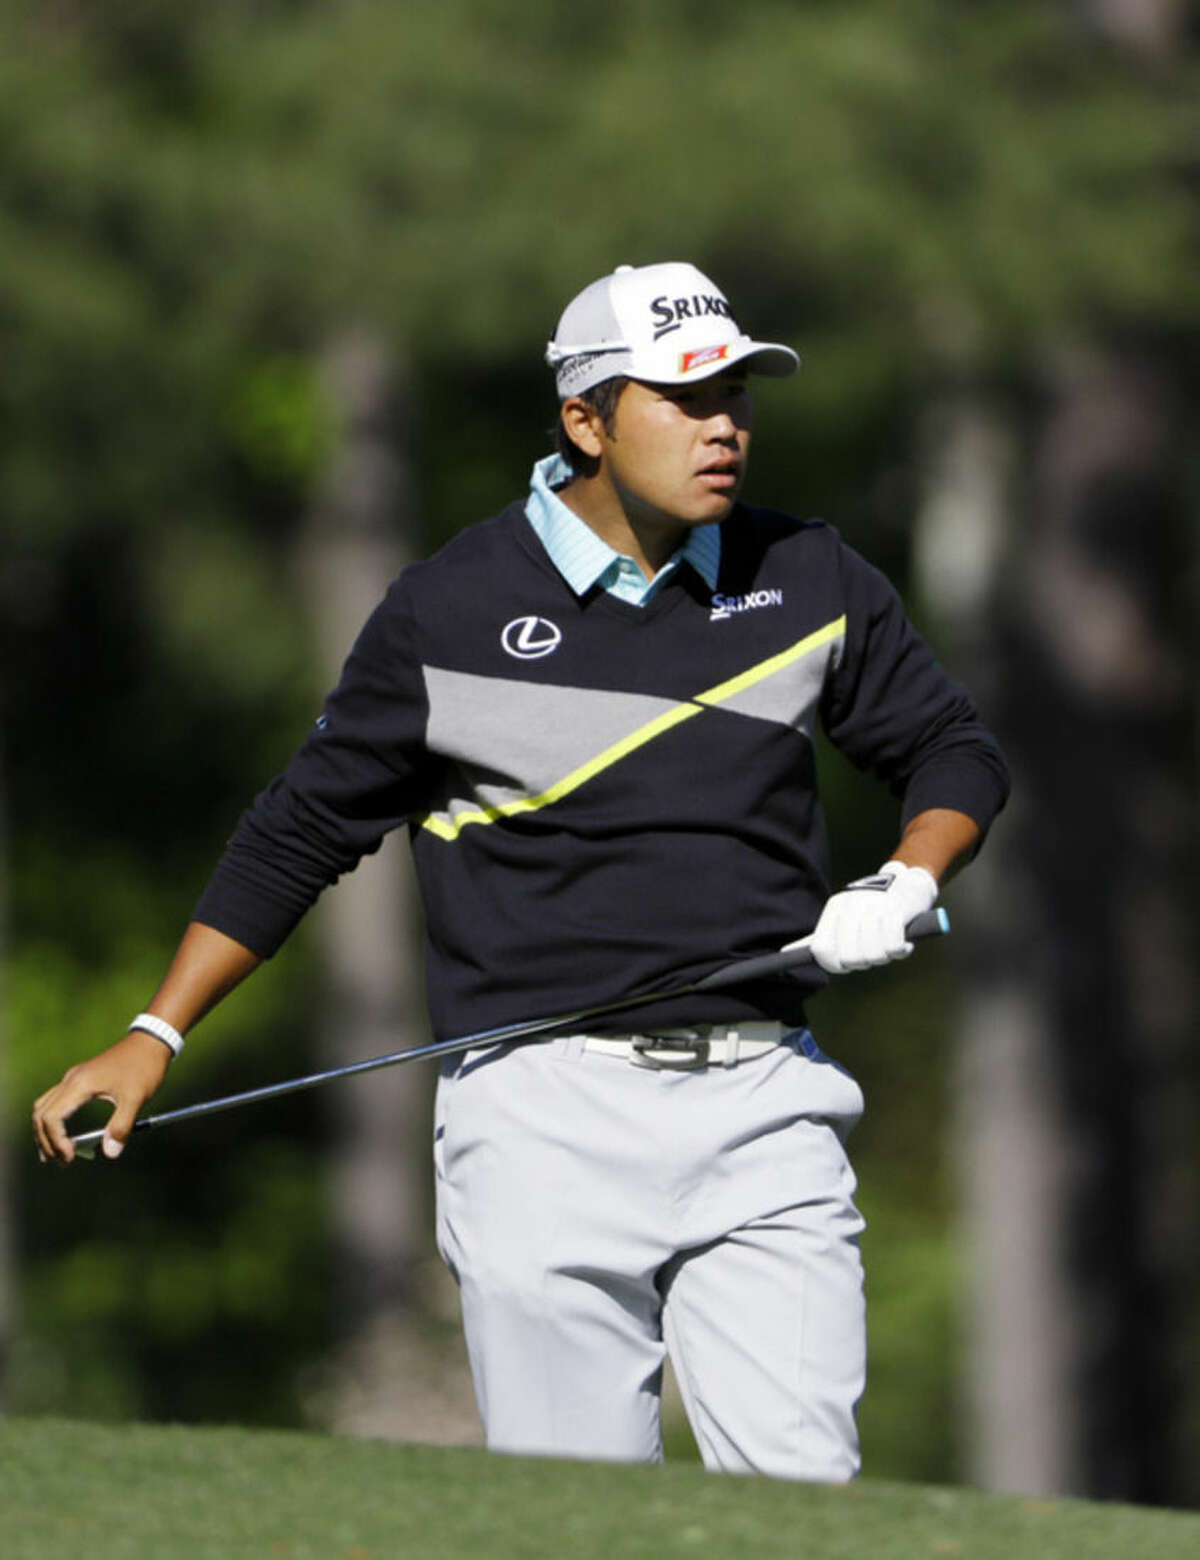 Hideki Matsuyama, of Japan, watches his tee shot on the 12th hole during the third round of the Masters golf tournament Saturday, April 9, 2016, in Augusta, Ga. (AP Photo/David J. Phillip)